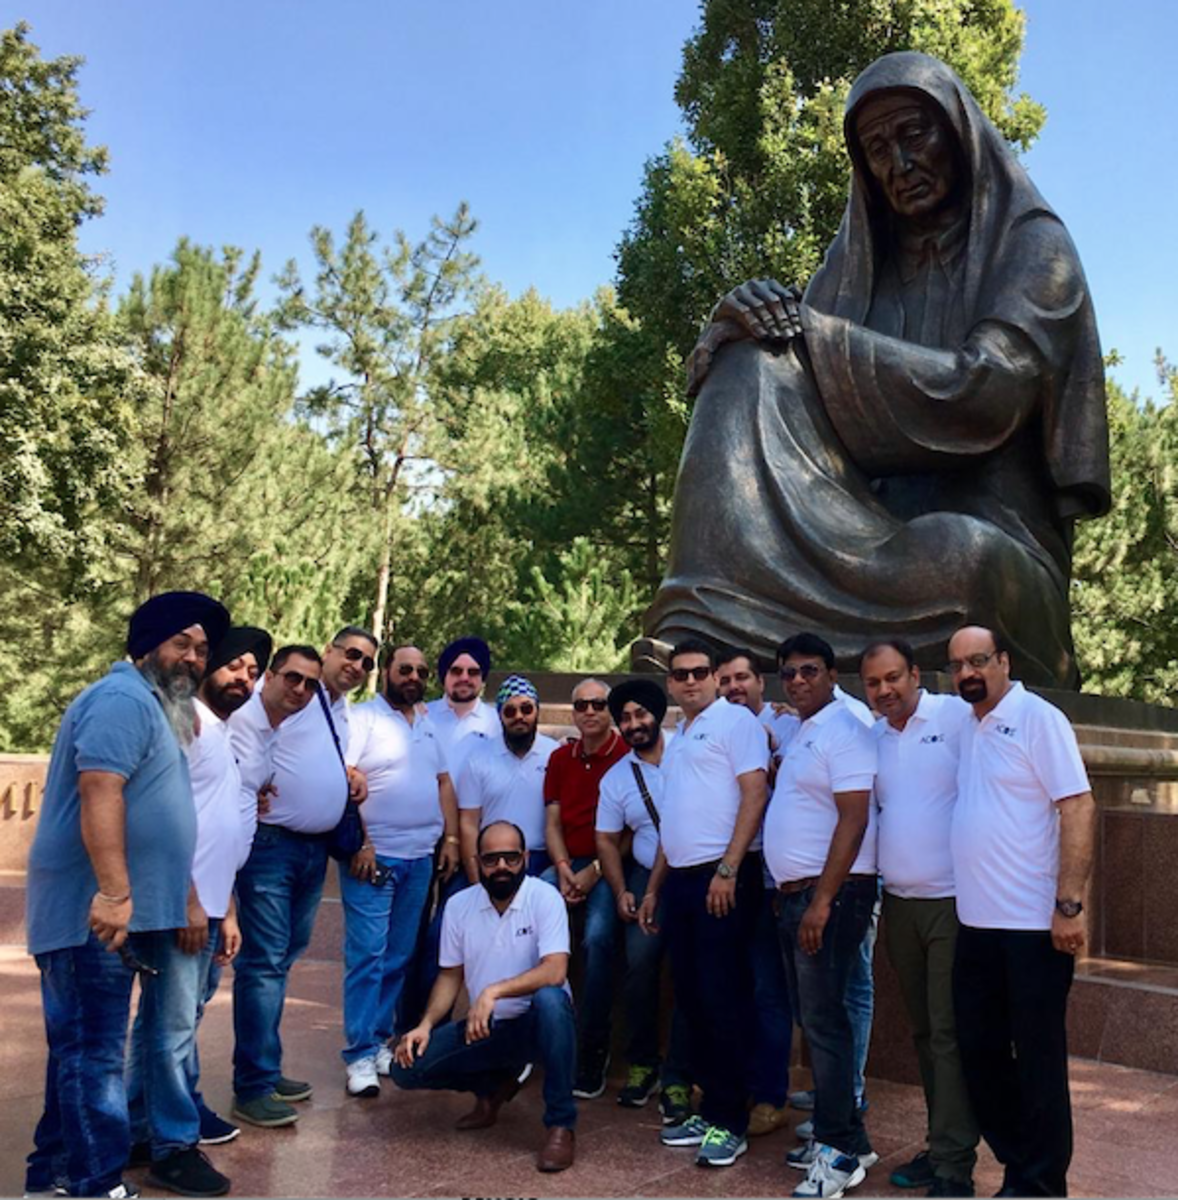 group photo in front of Statue of Mourning Mother